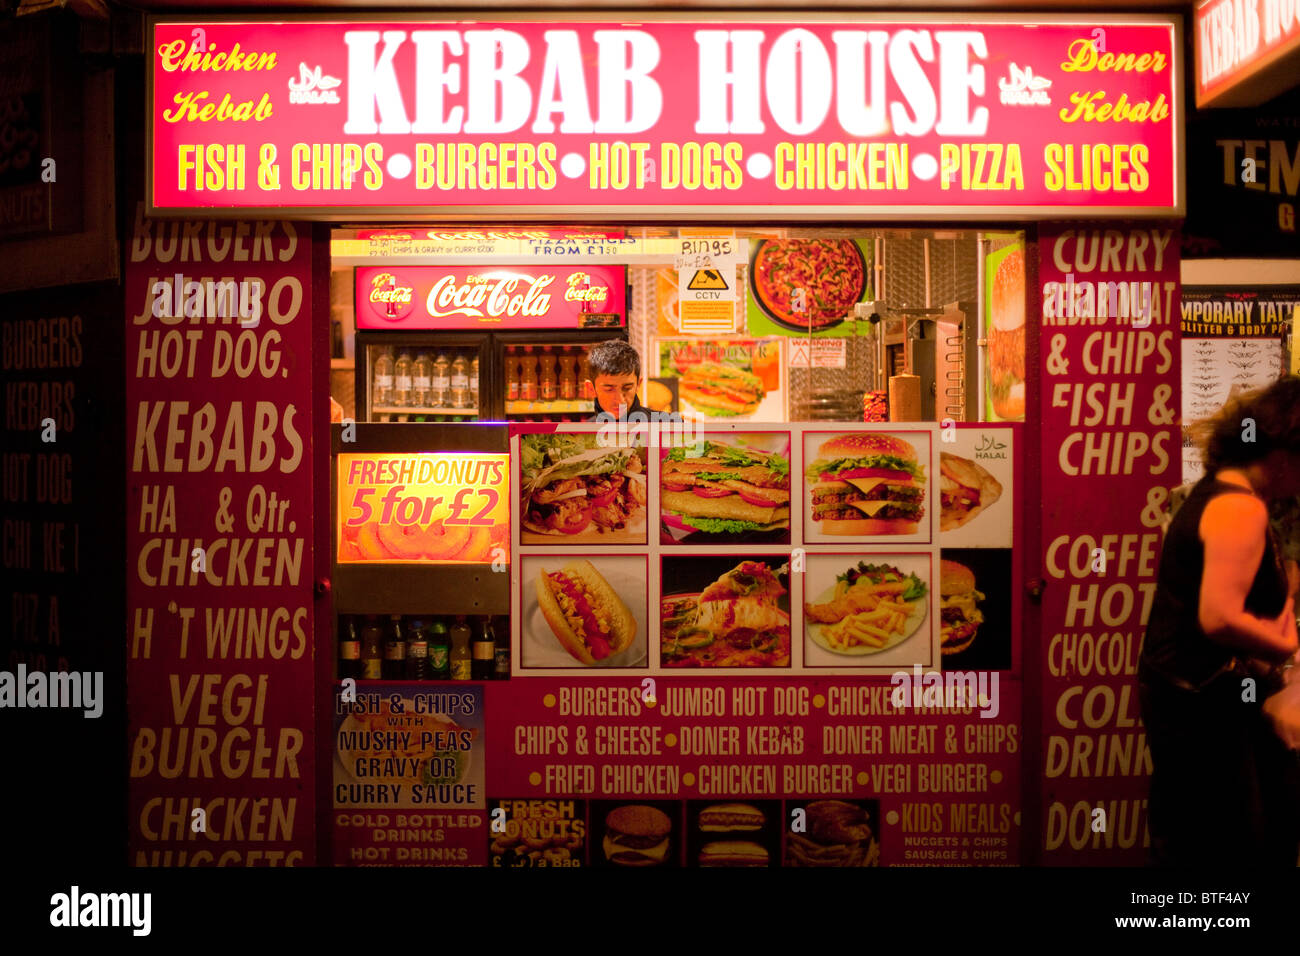 Kabob house 28 images kabob house offers home style for Classic kebab house stechford